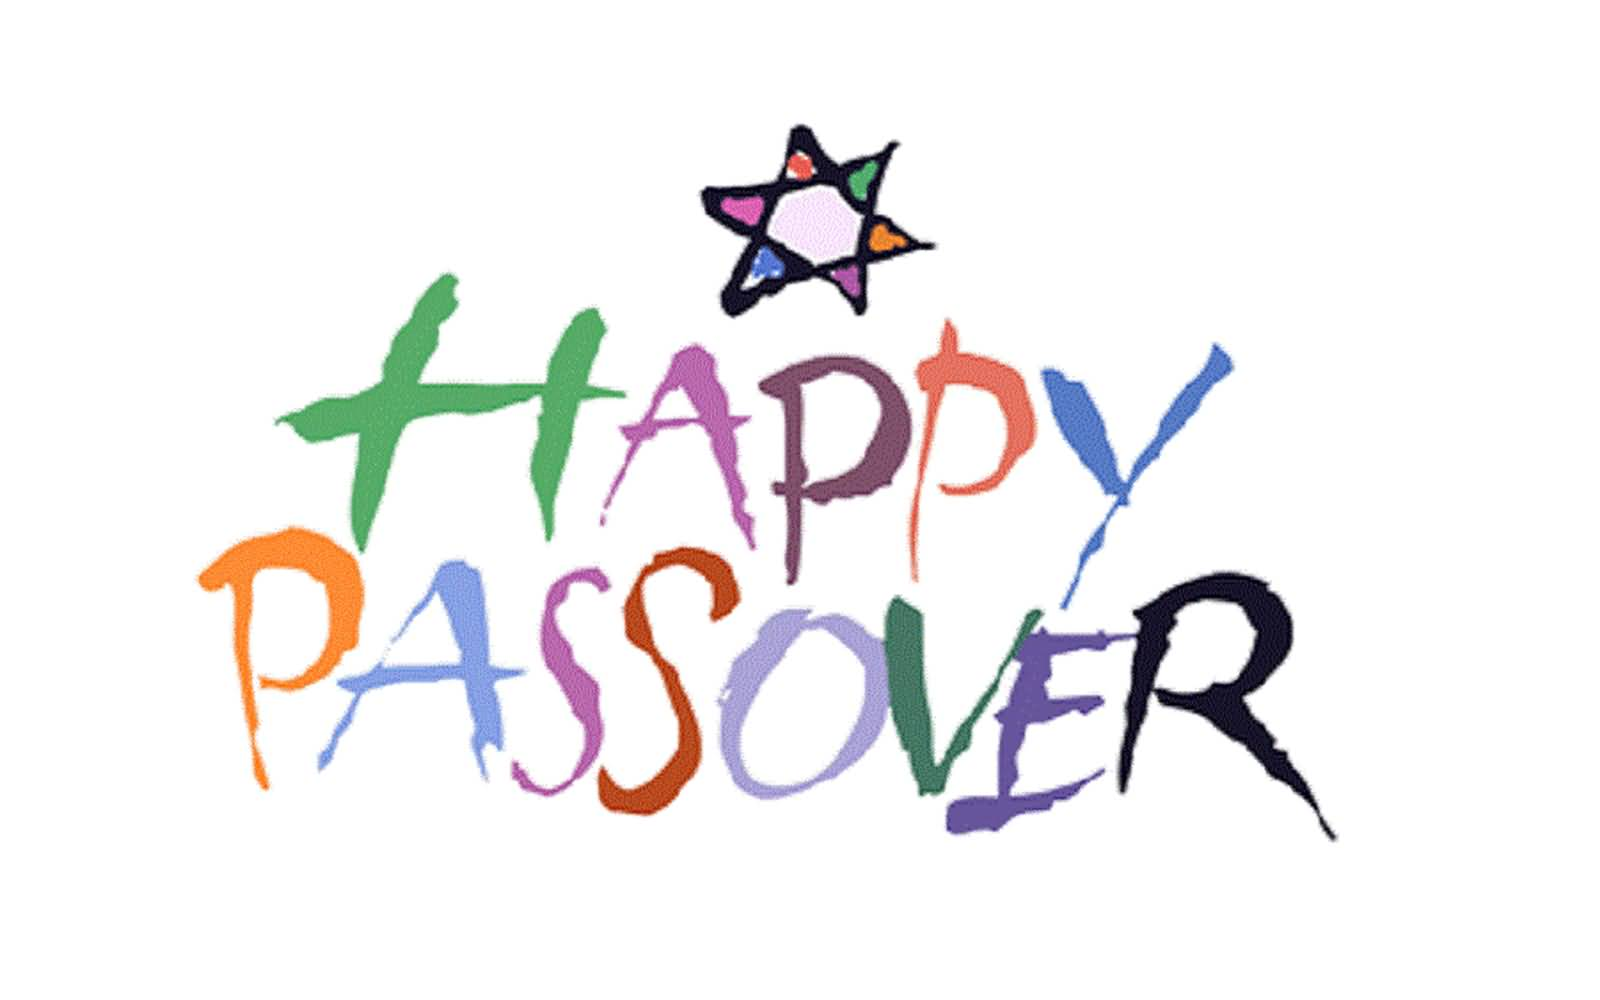 106-Happy Passover Wishes